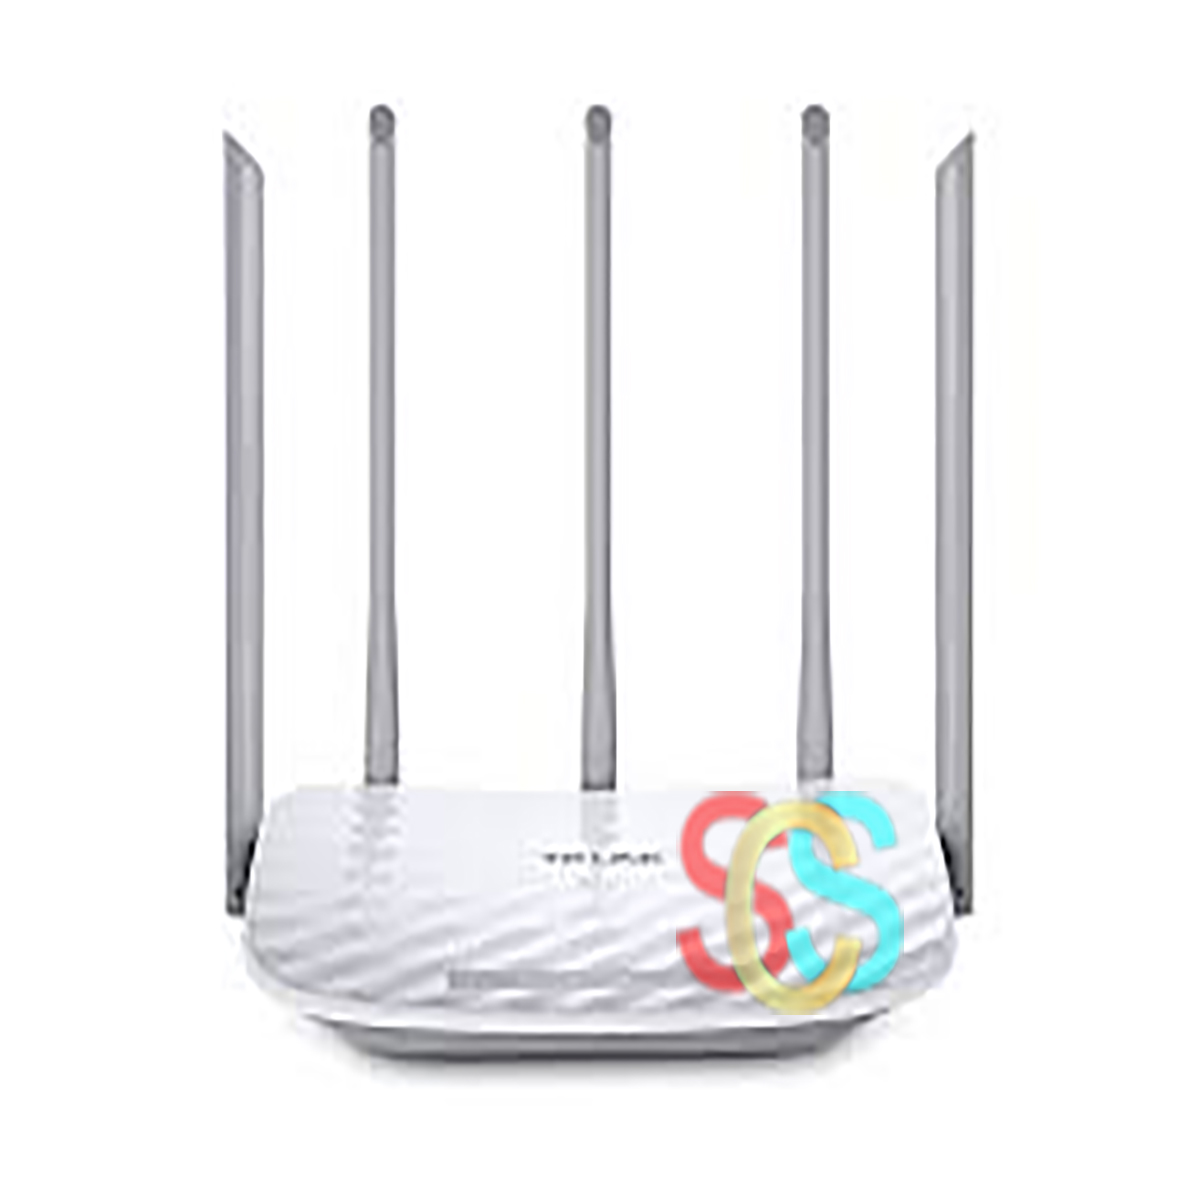 TP-Link Archer C60 AC1350 Mbps Ethernet Dual-Band Wi-Fi Router